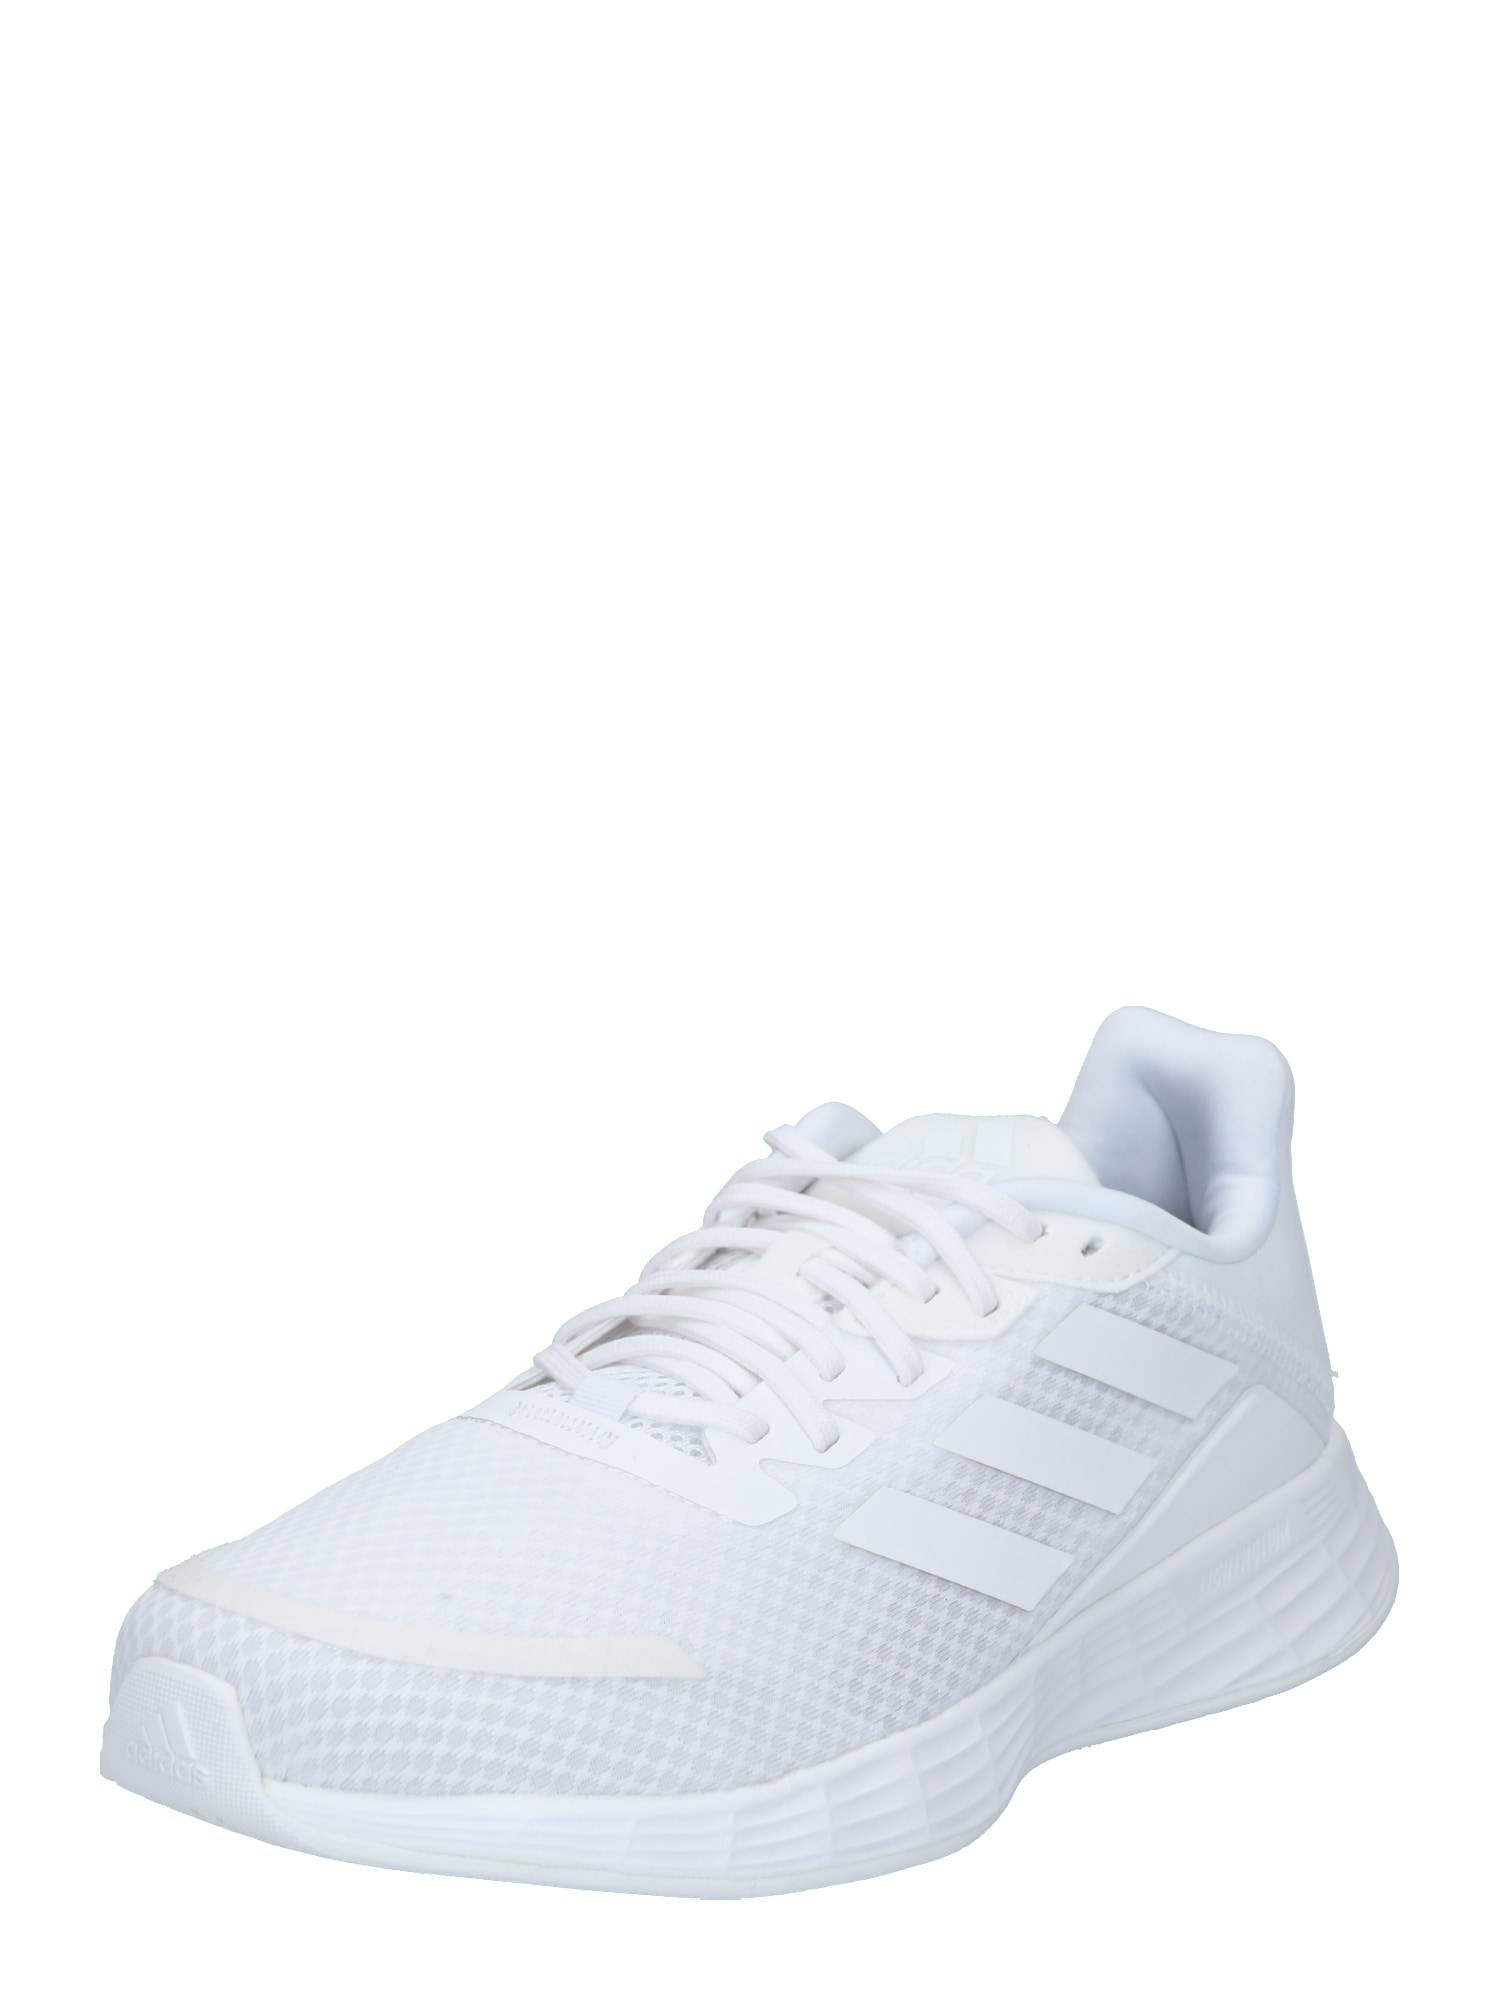 ADIDAS PERFORMANCE Chaussure de course  - Blanc - Taille: 8 - male